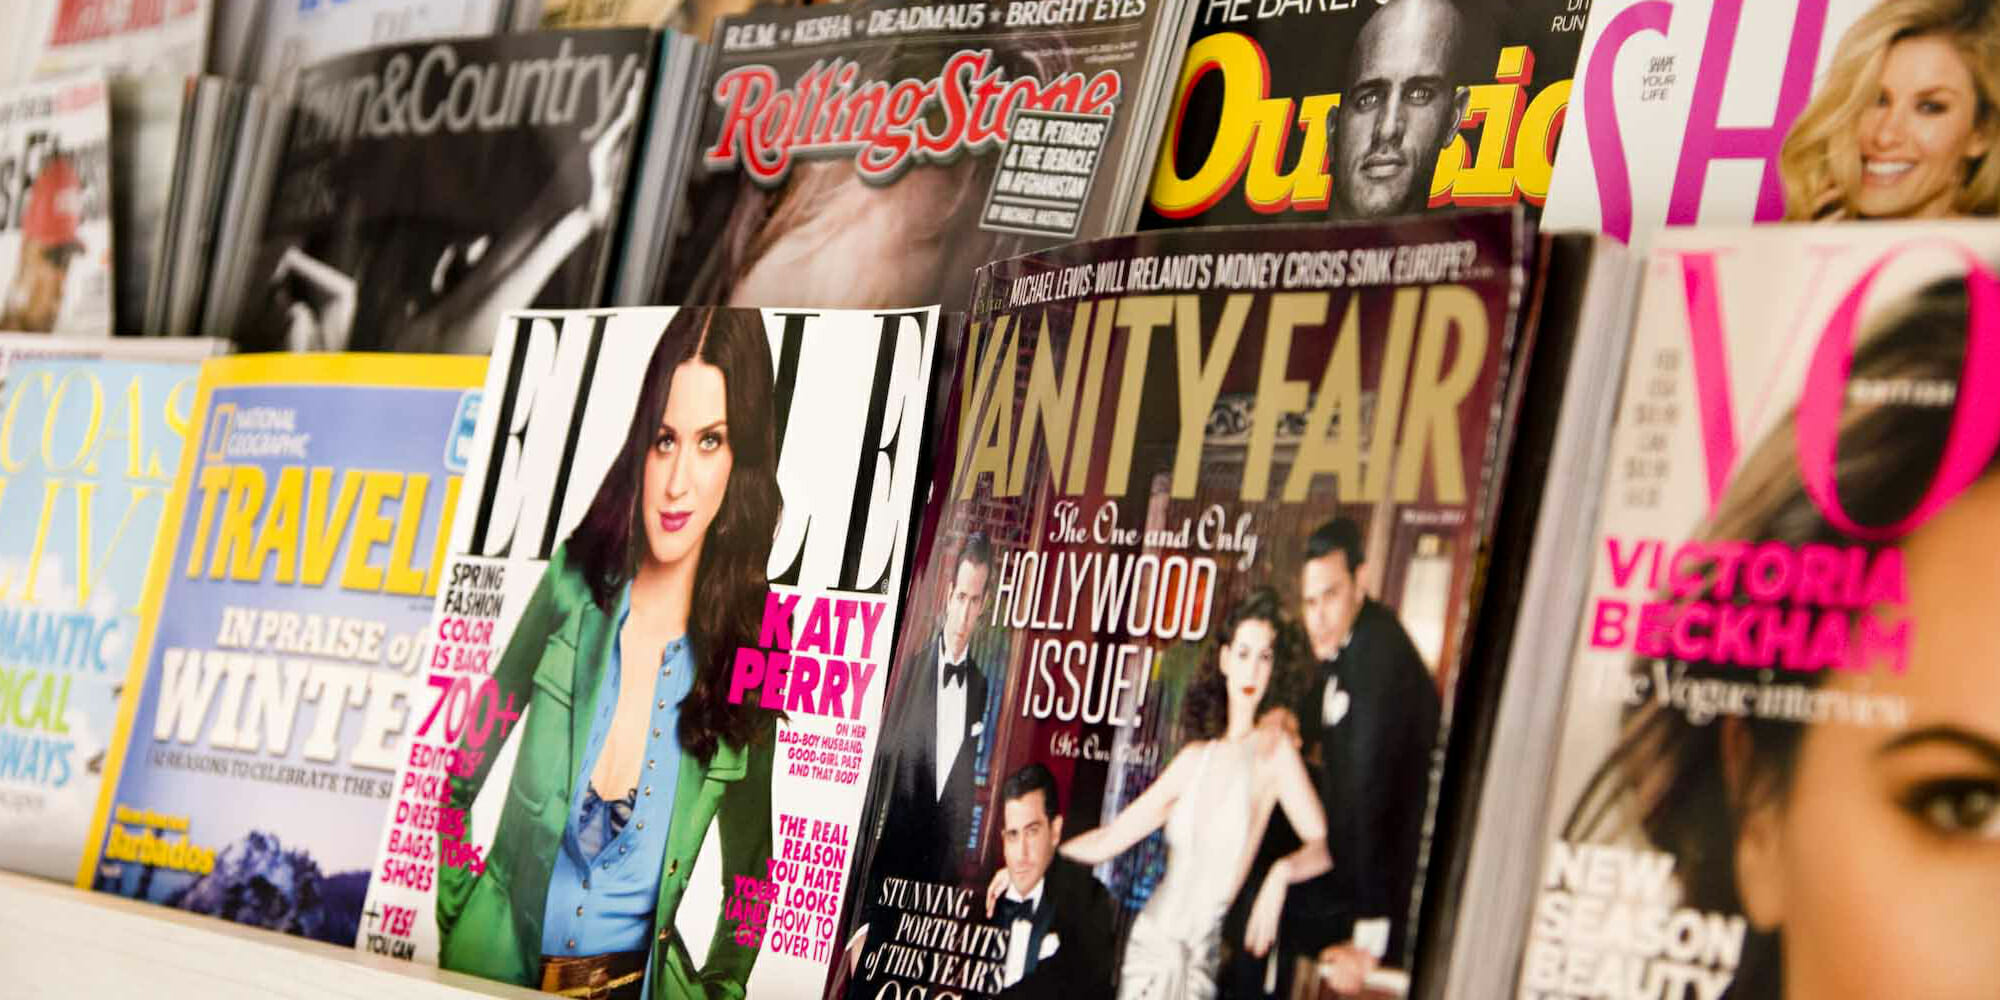 A new study proposes print media may have a problem with representing women and people of color fairly.